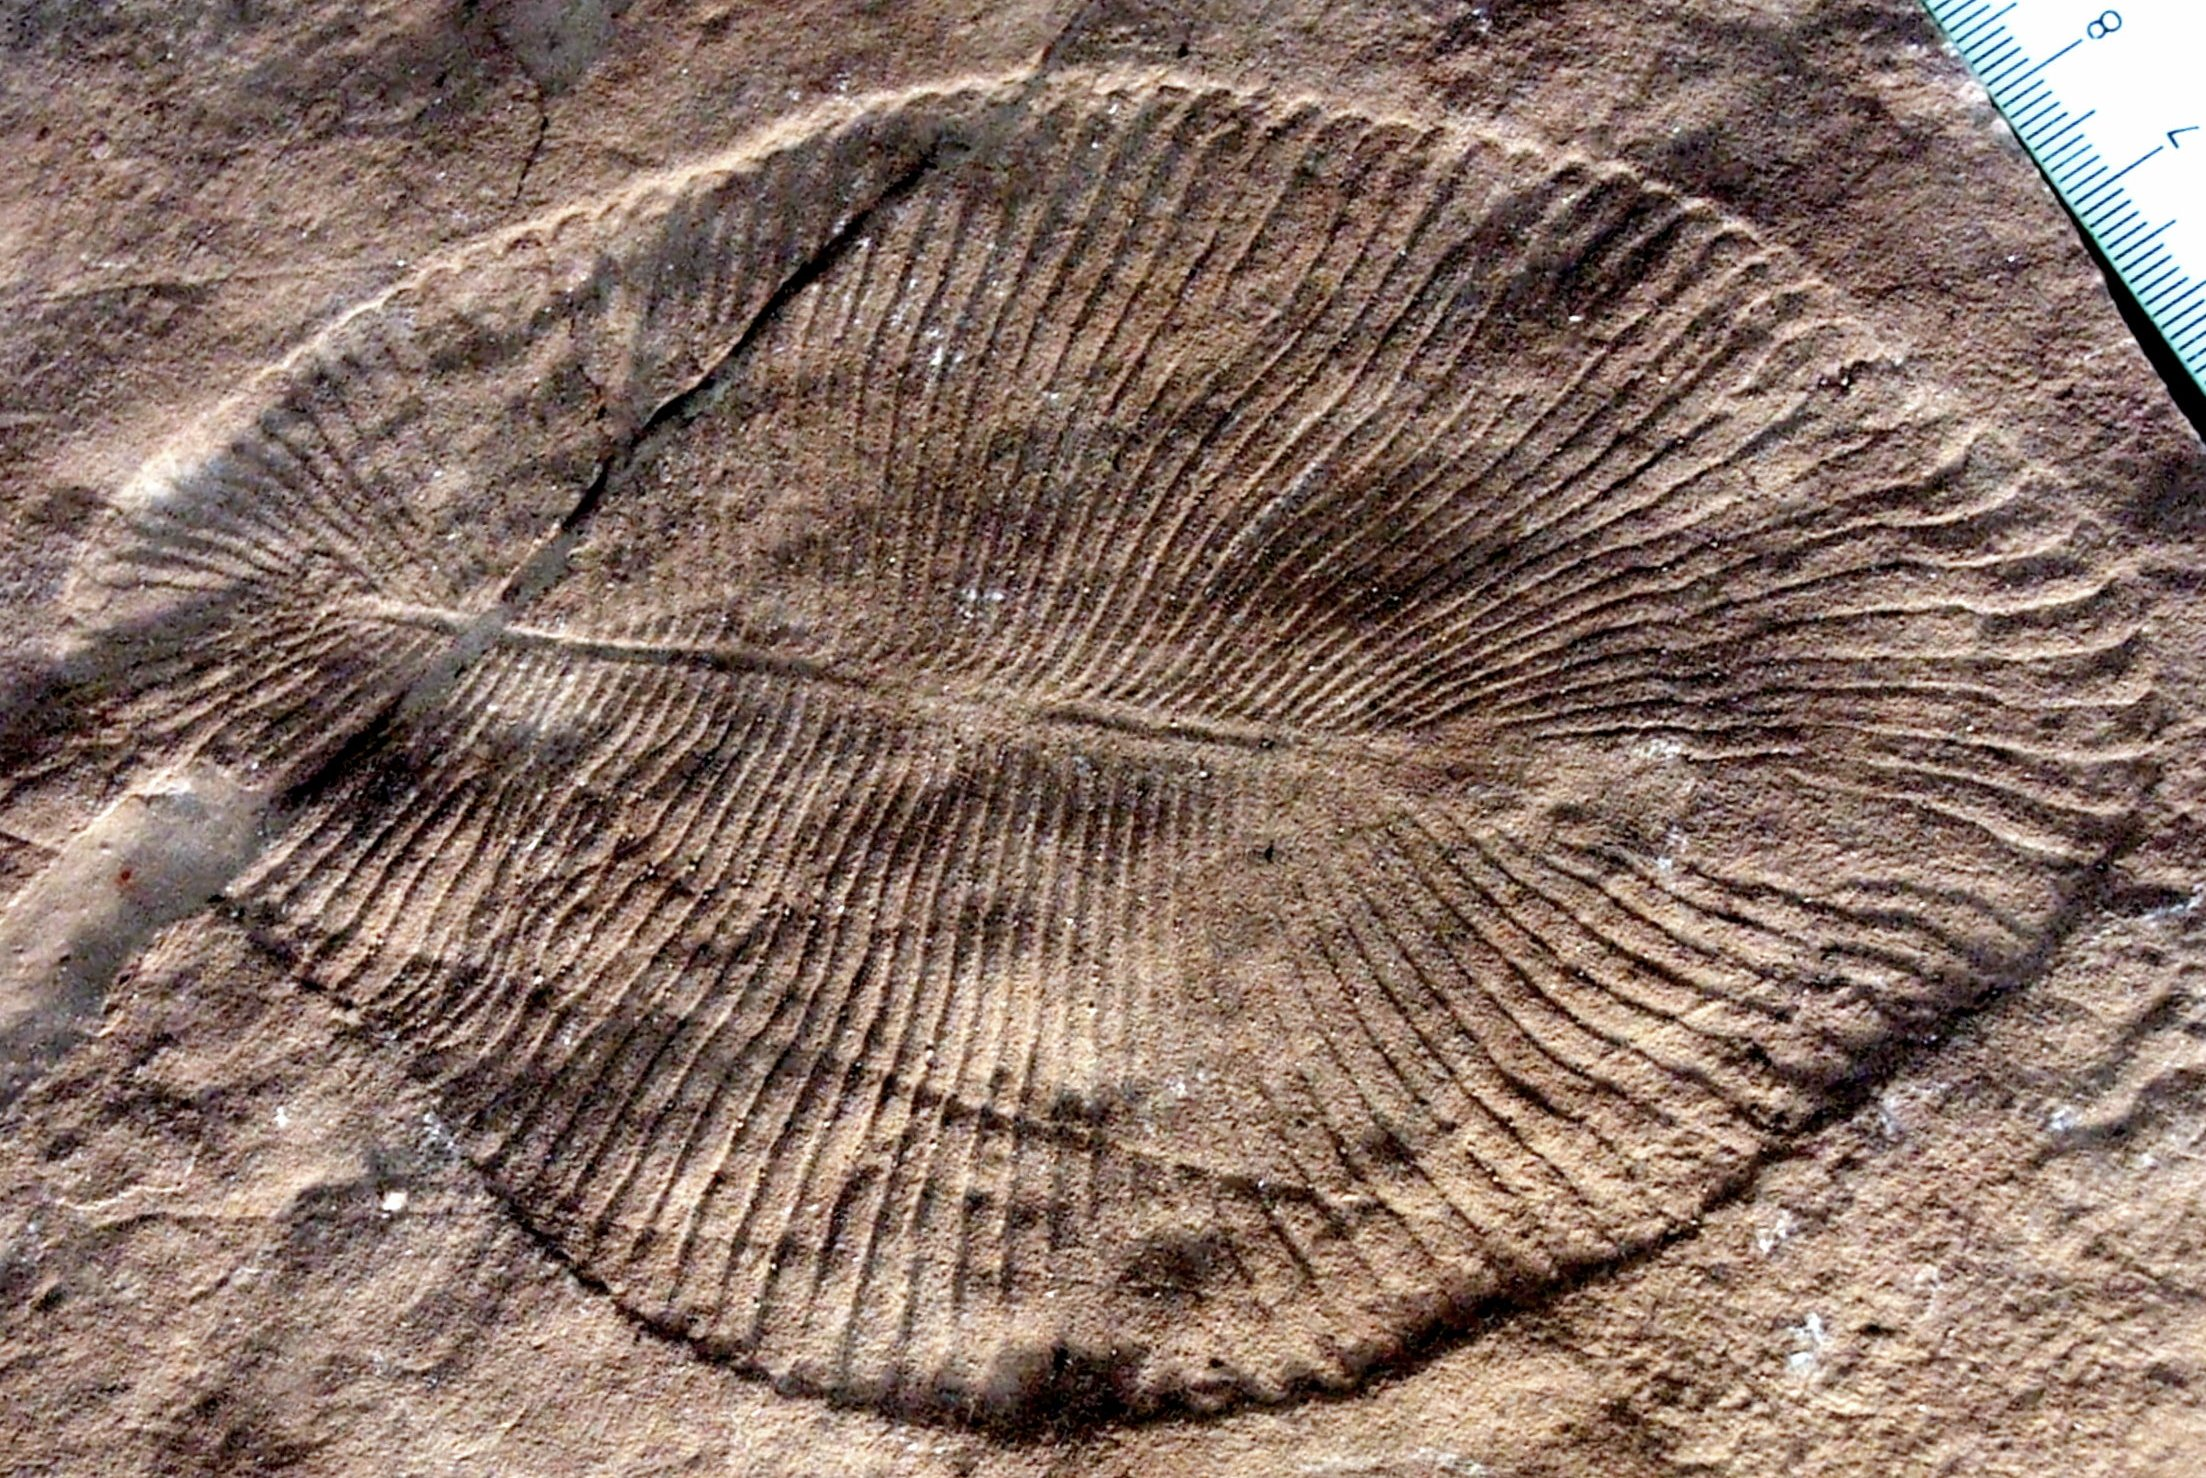 Ediacaran biota Google image from https://simple.wikipedia.org/wiki/Ediacaran_biota